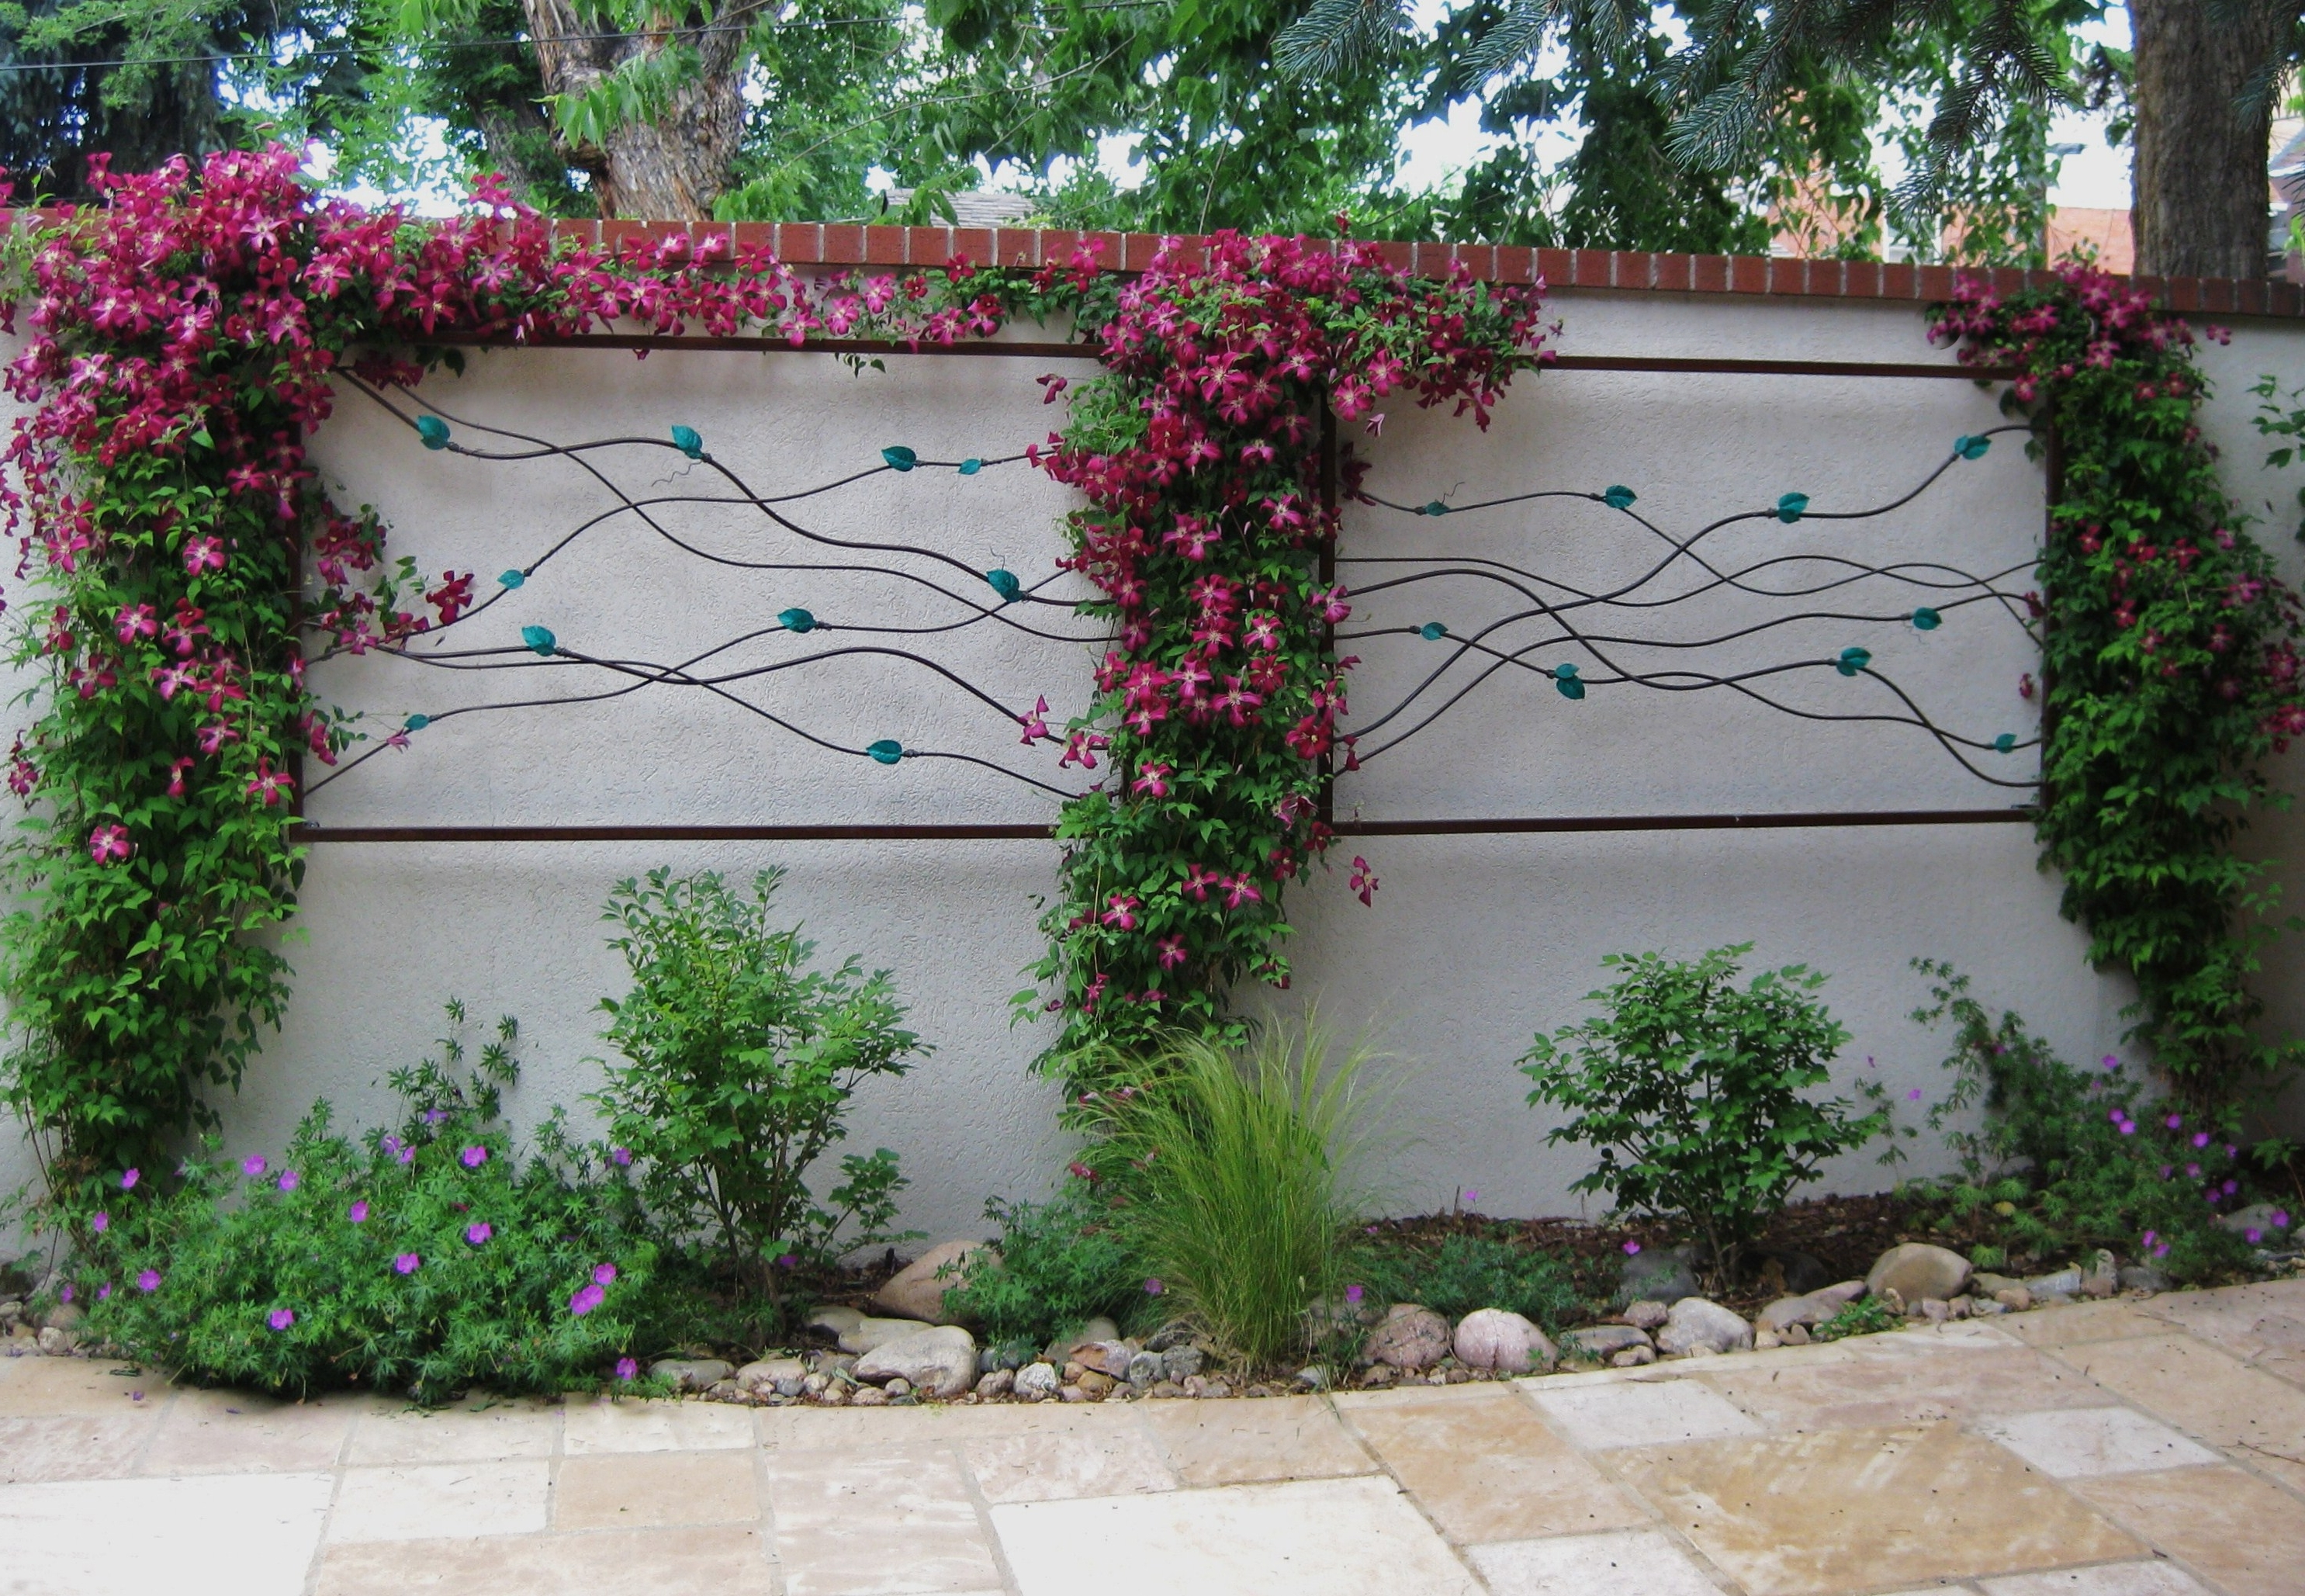 Current Wall Art Designs: Garden Wall Art Framed Art With Leaves Flower Throughout Outside Wall Art (View 2 of 15)